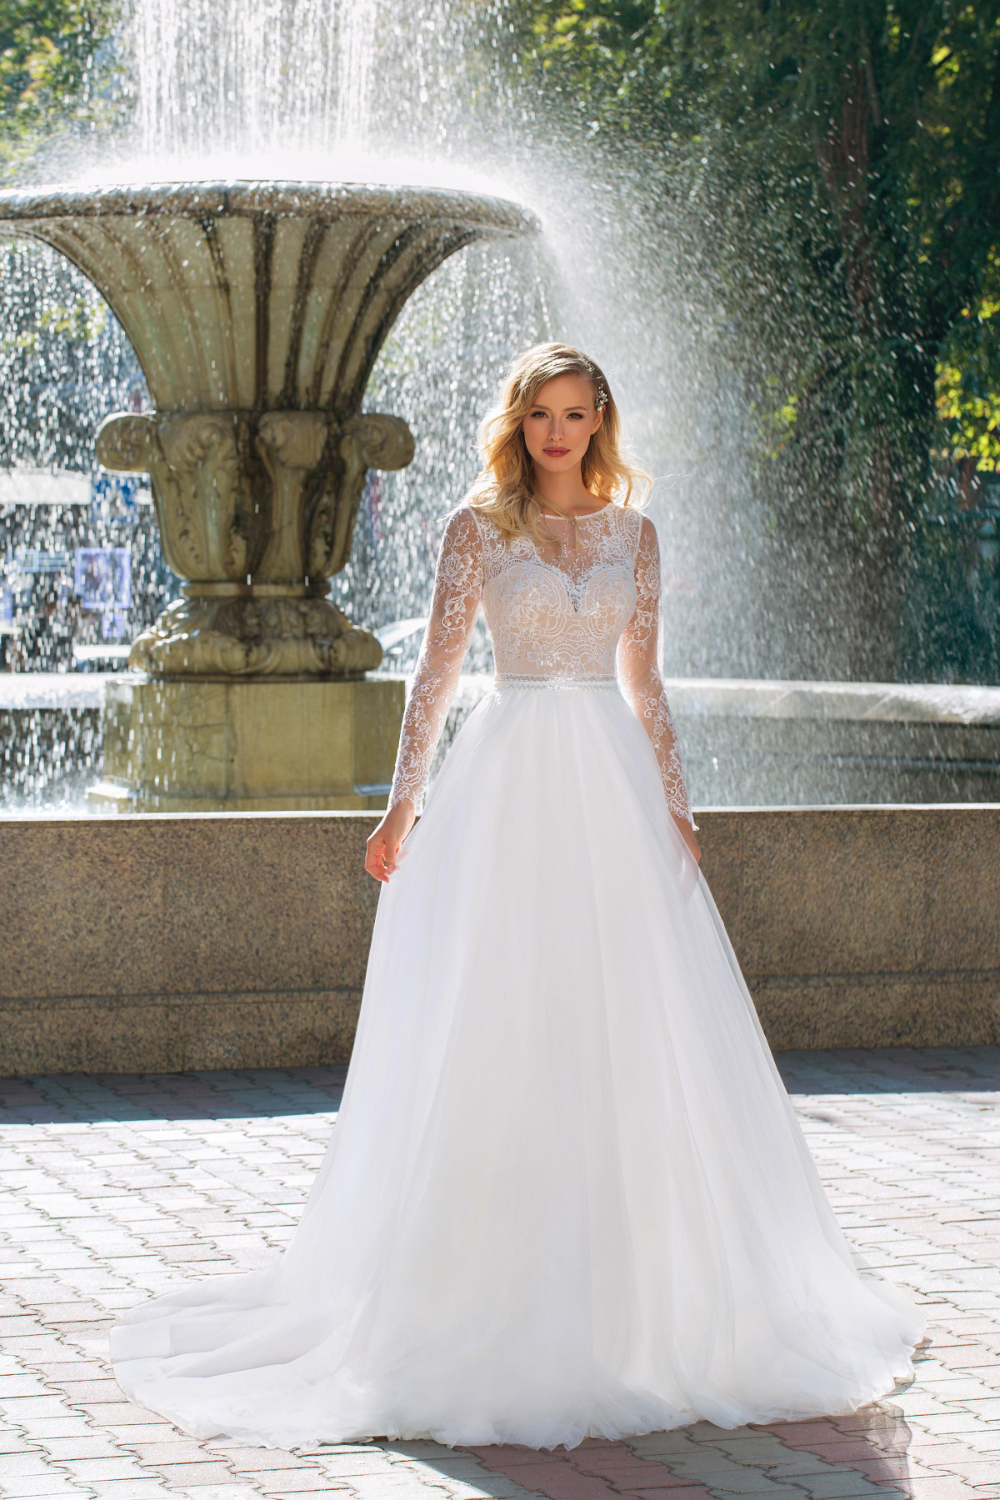 Angela Bianca 1010 Size 10 Ivory 898 Now 399 Available At Debra S Bridal Jacksonville Fl 32256 Contact Us To In 2020 Wedding Dresses Tulle Ball Gown Dresses